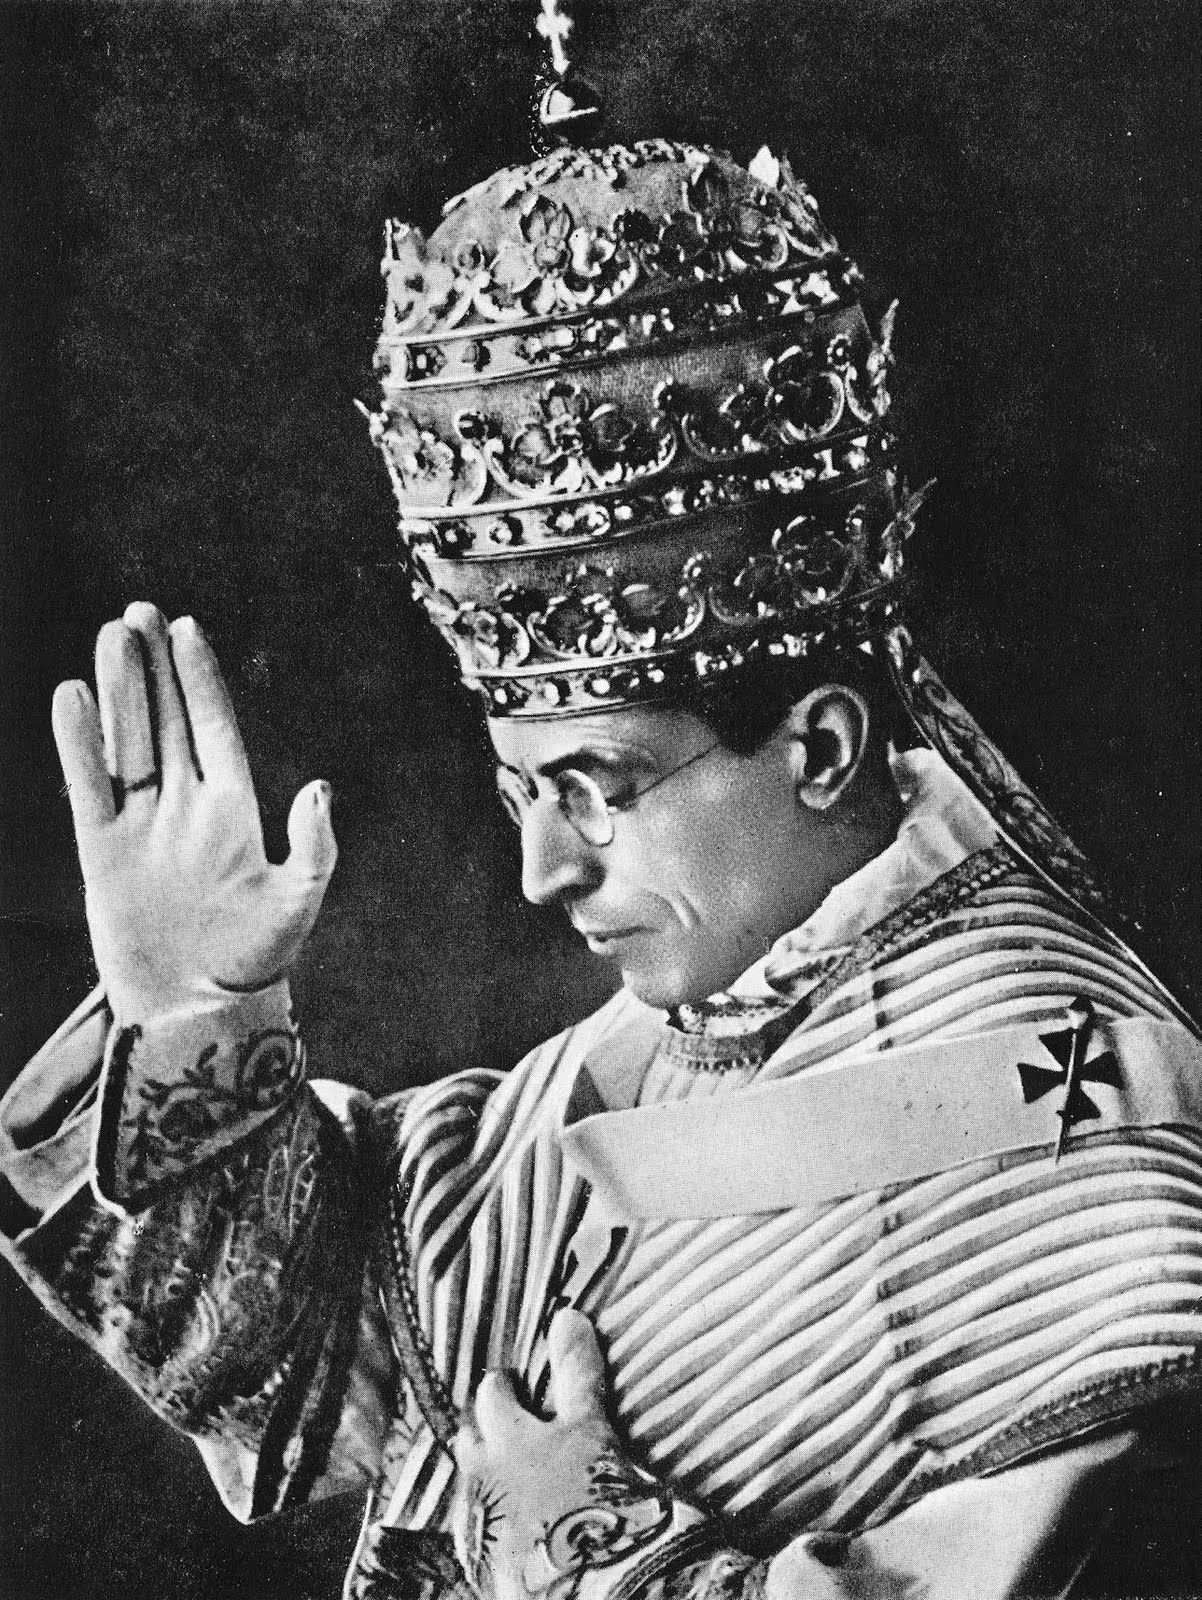 https://eccechristianus.files.wordpress.com/2012/02/piusxii.jpg